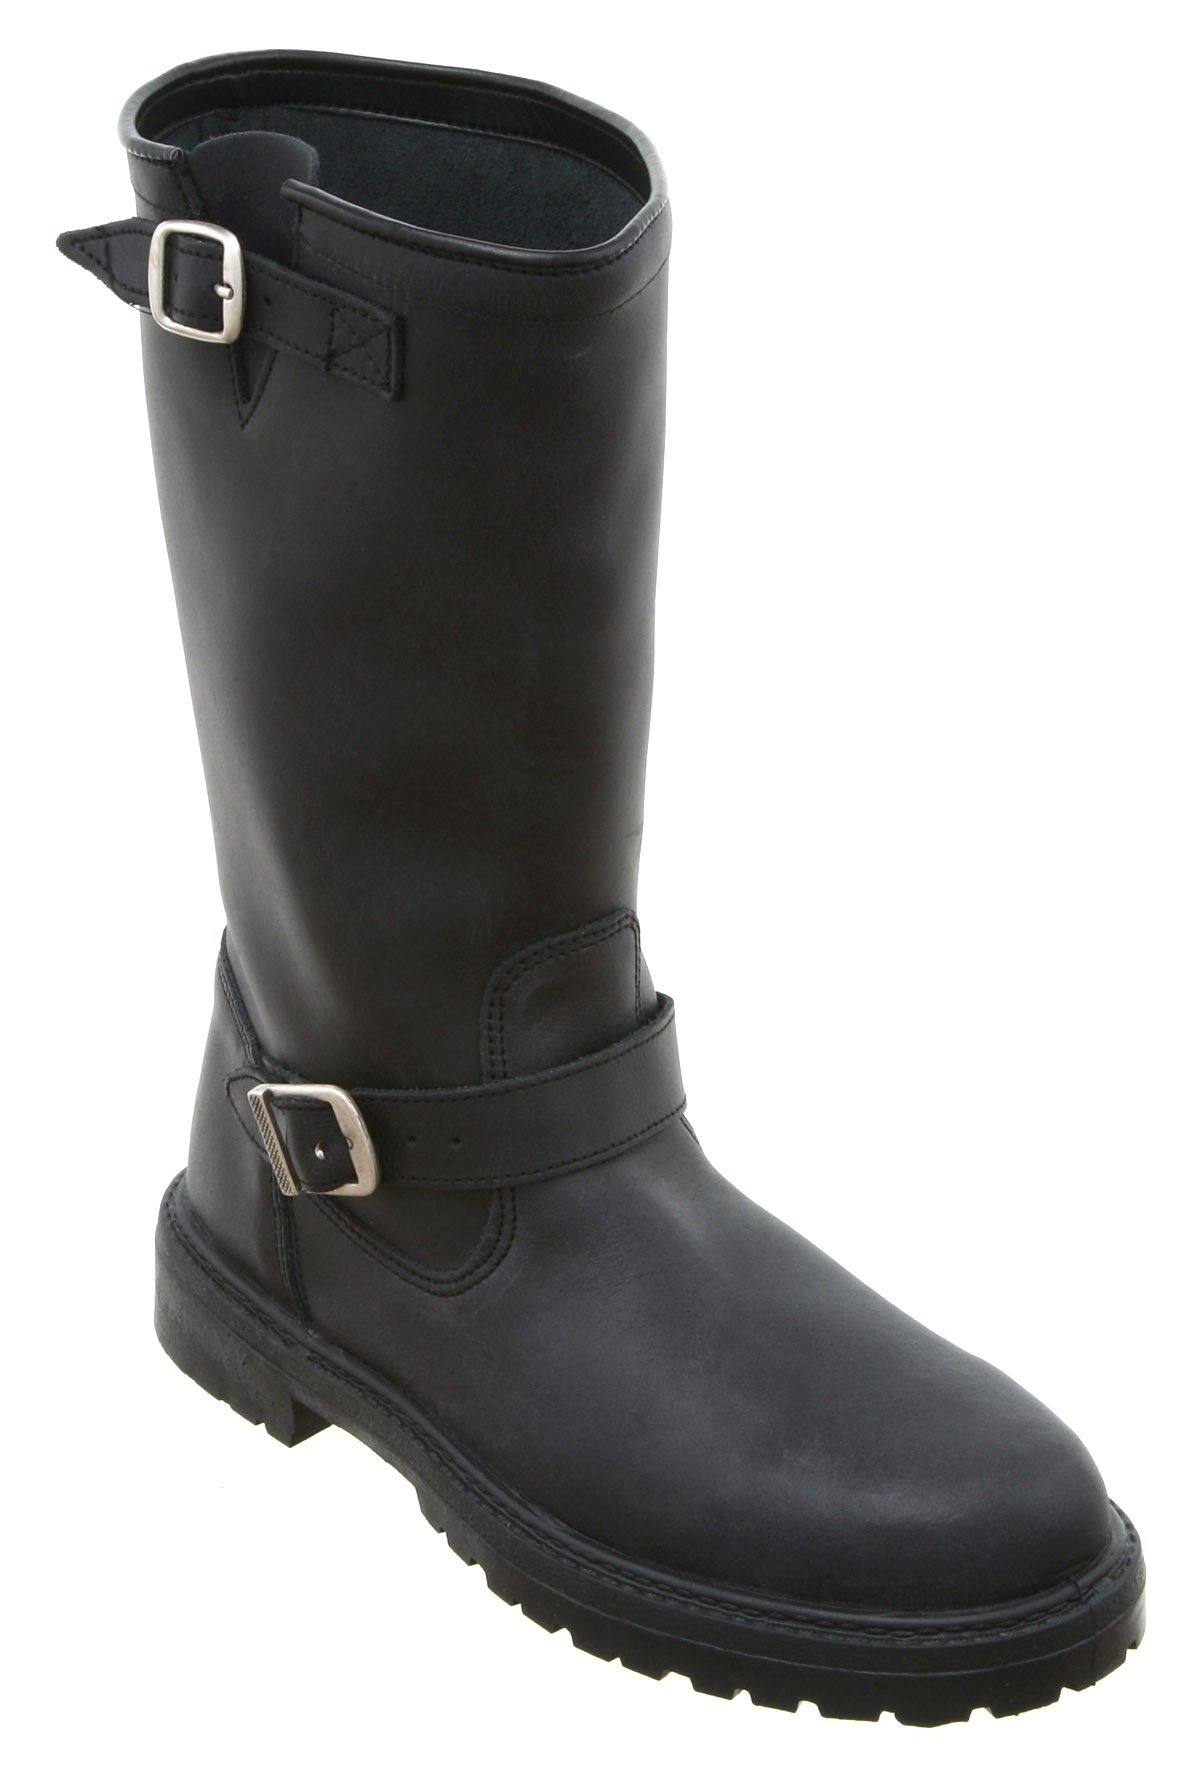 Womens Office Passenger Biker Boot Black Leather Boots | eBay